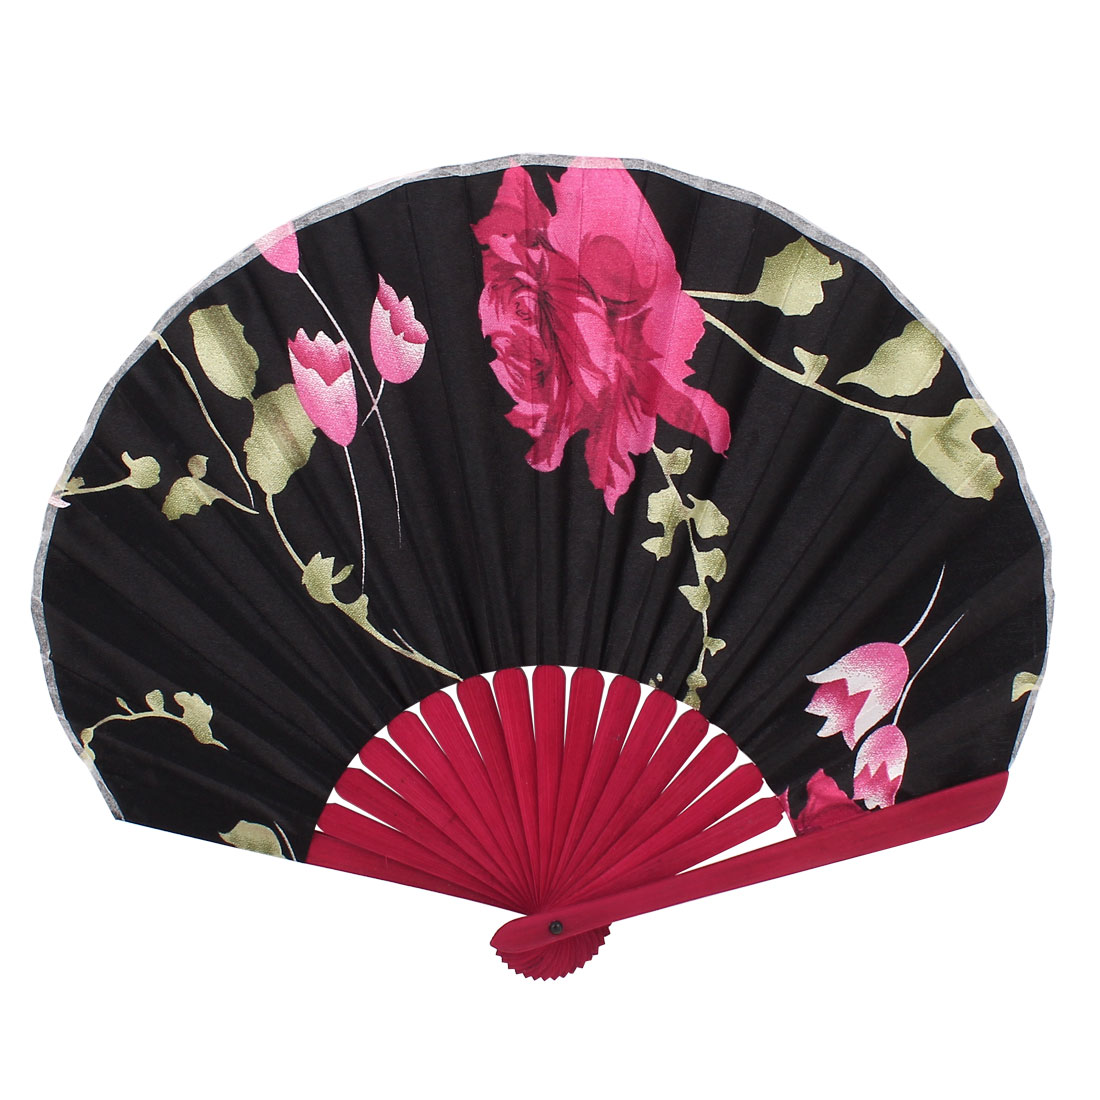 Bamboo Ribs Flower Pattern Silky Section Foldable Dance Craft Hand Fan Red Black